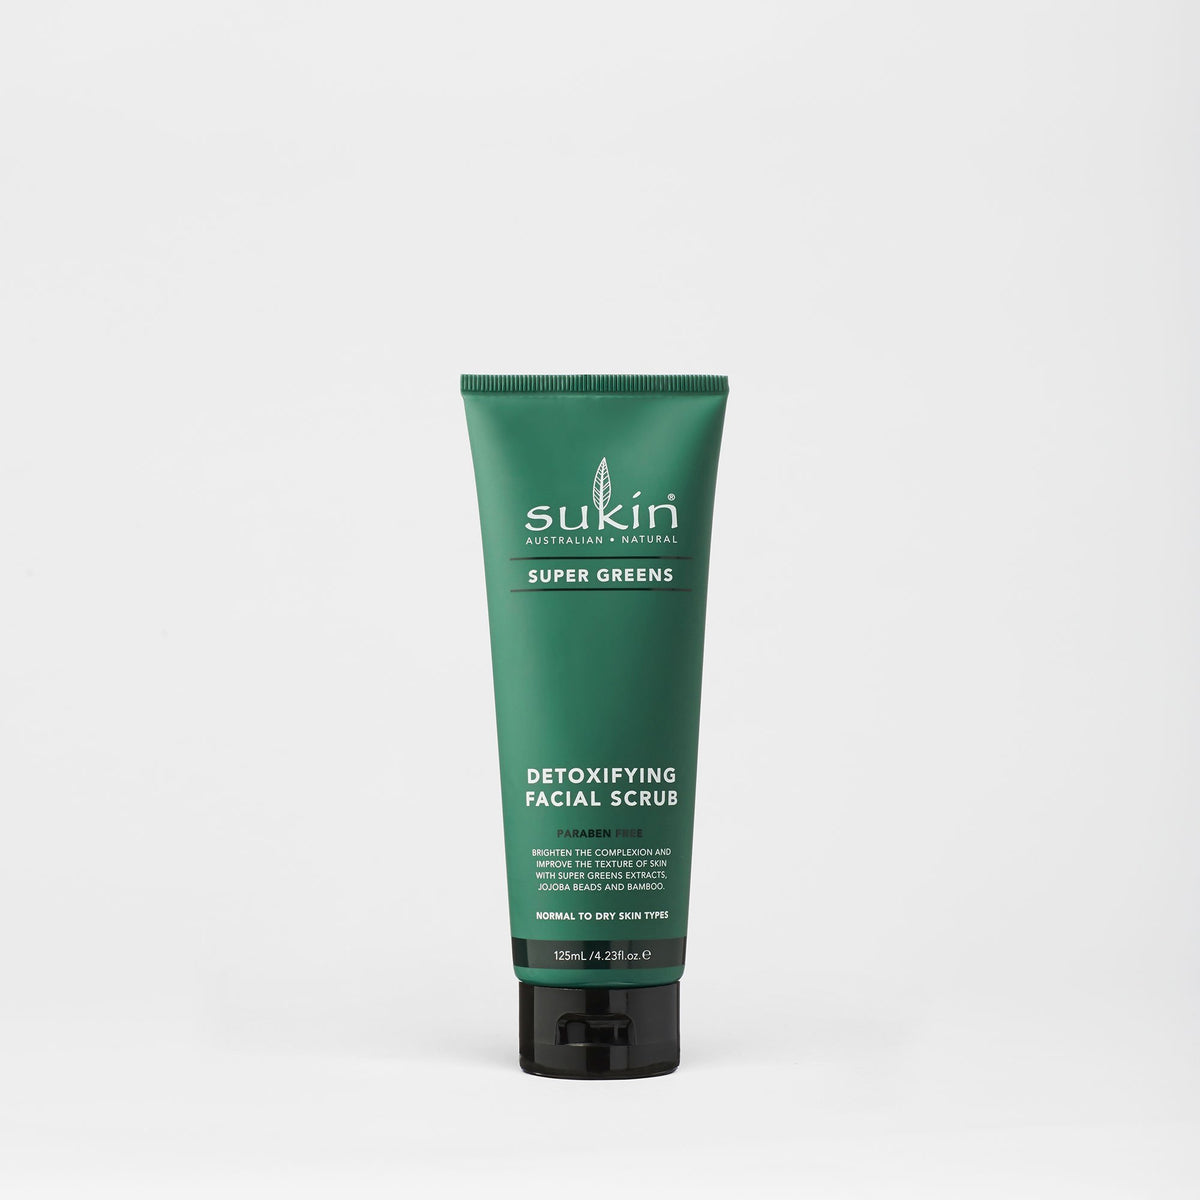 Sukin Naturals Super Greens Detoxifying Facial Scrub